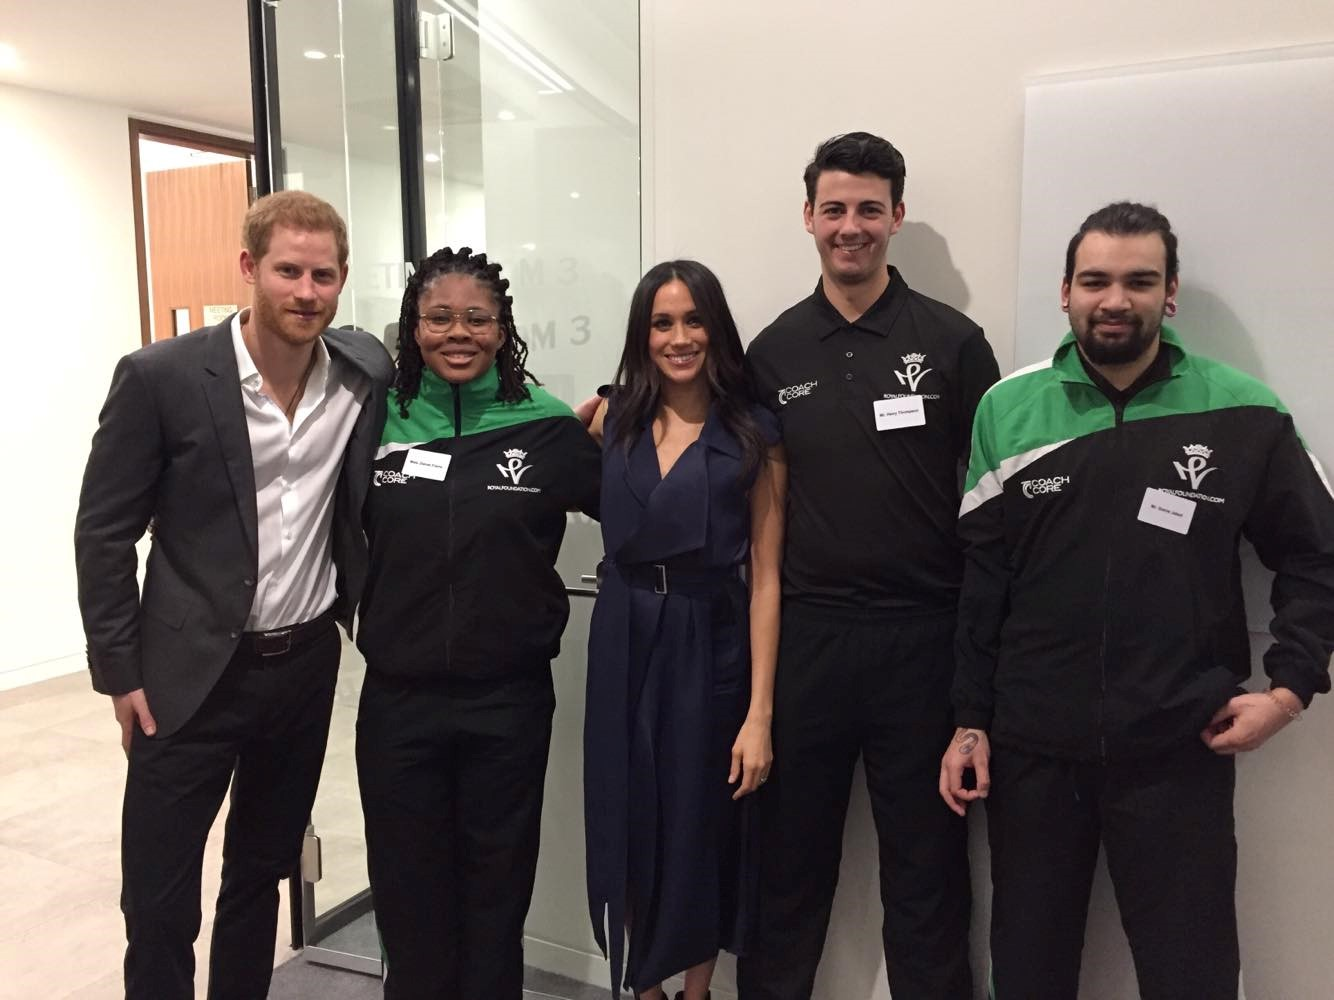 Essex Coach Core Apprentice attends first Royal Foundation Forum